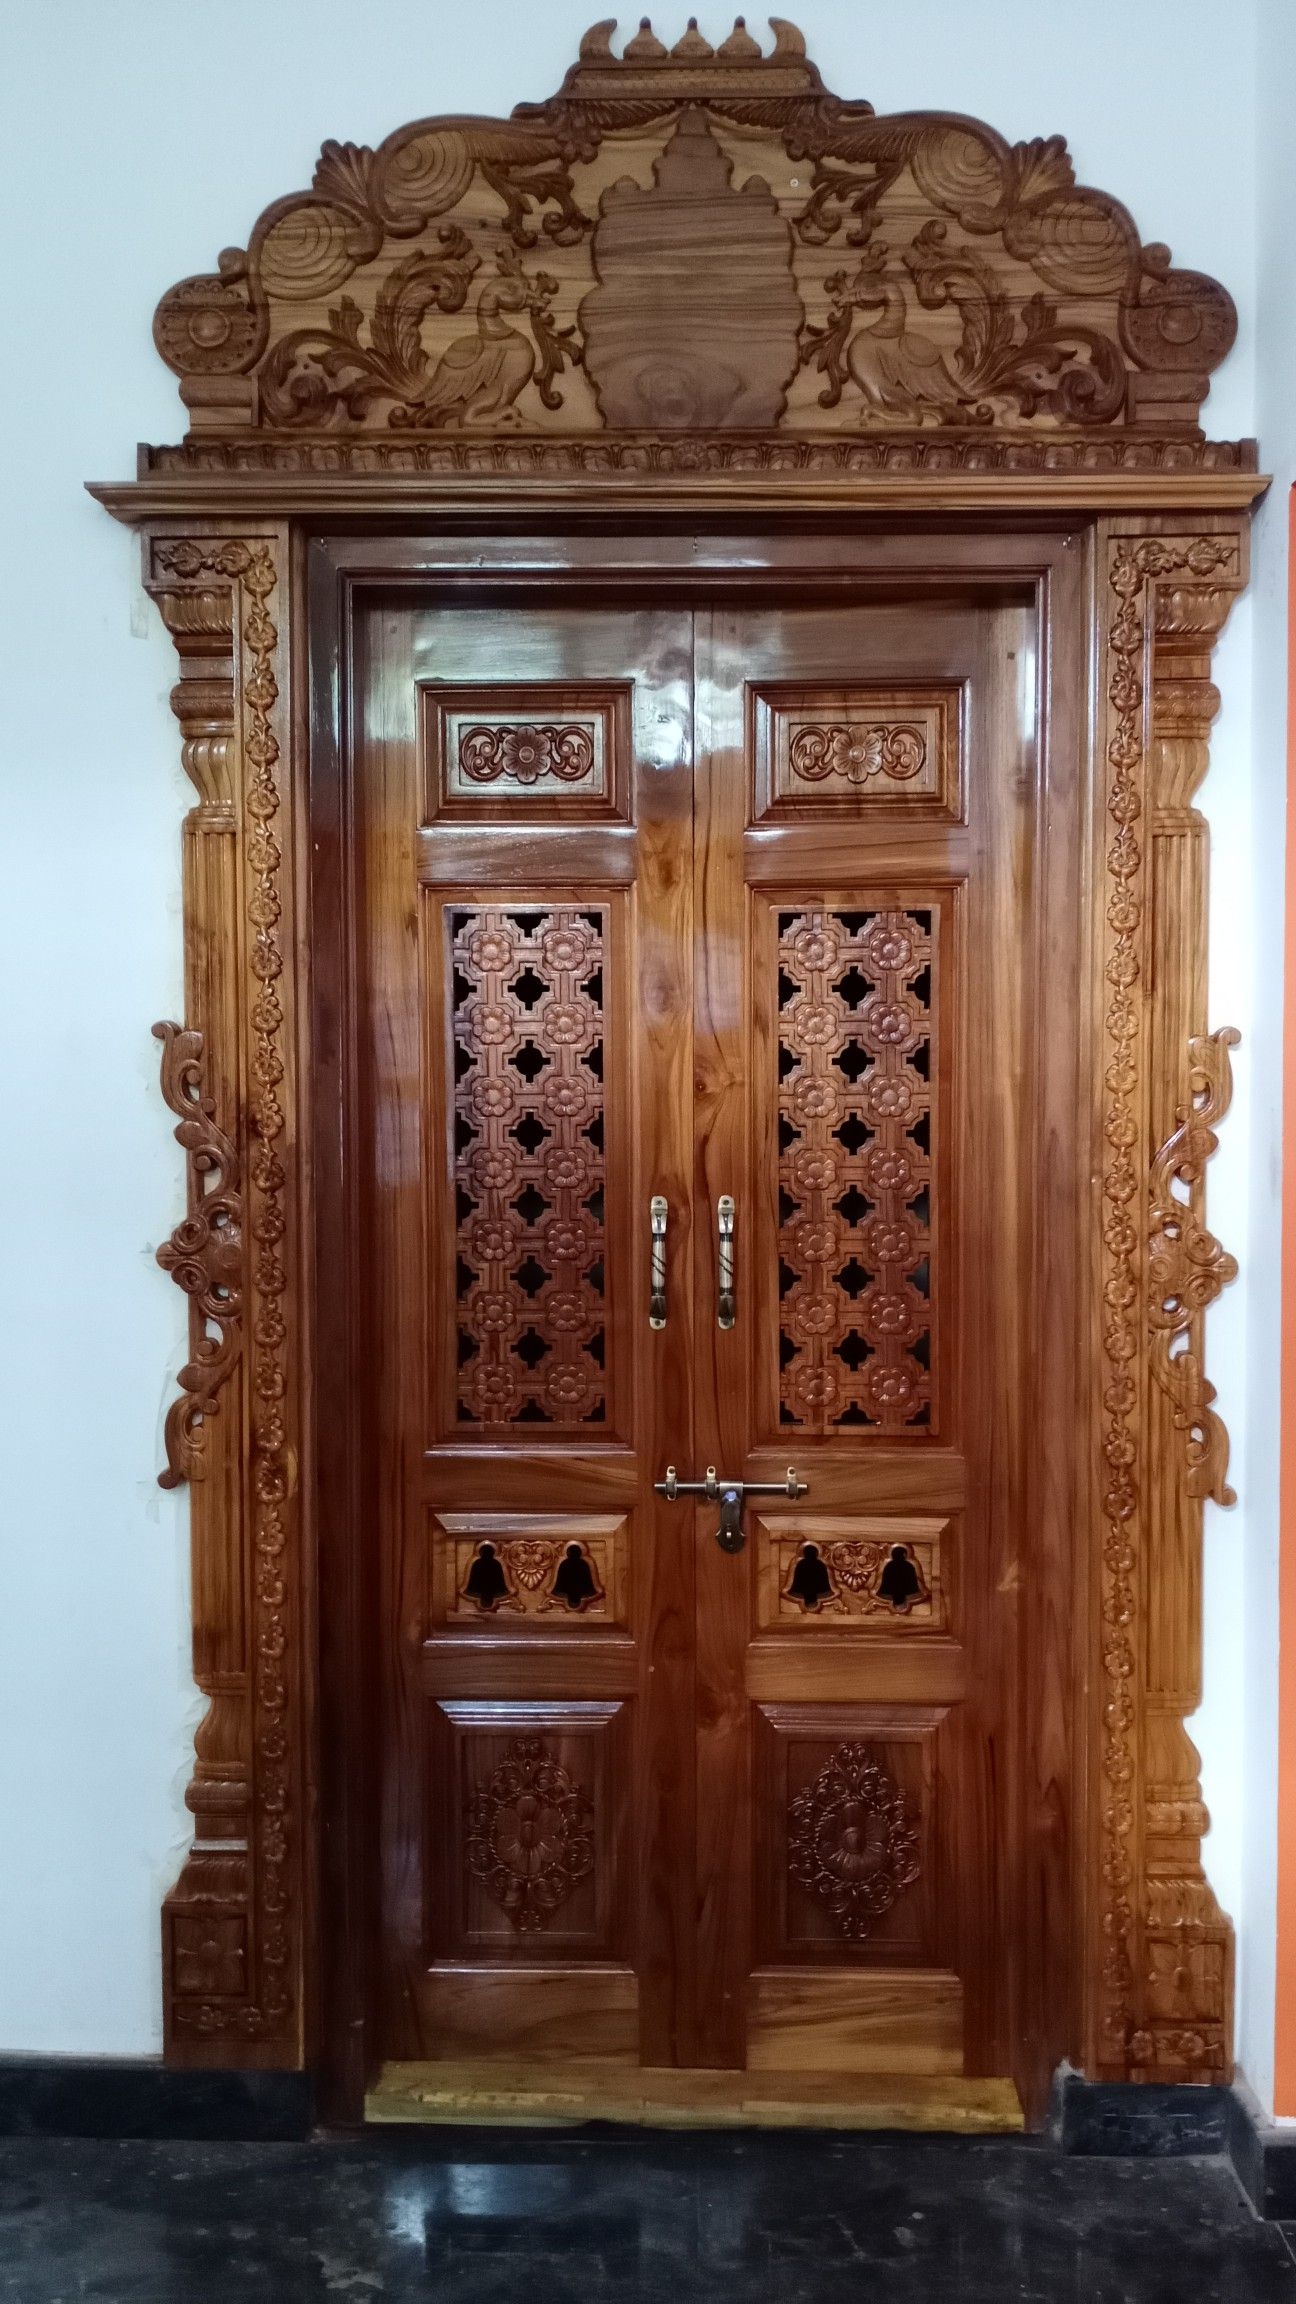 Pooja Room Door Carving Designs Google Search: Pin By Keshav Chary On S In 2020